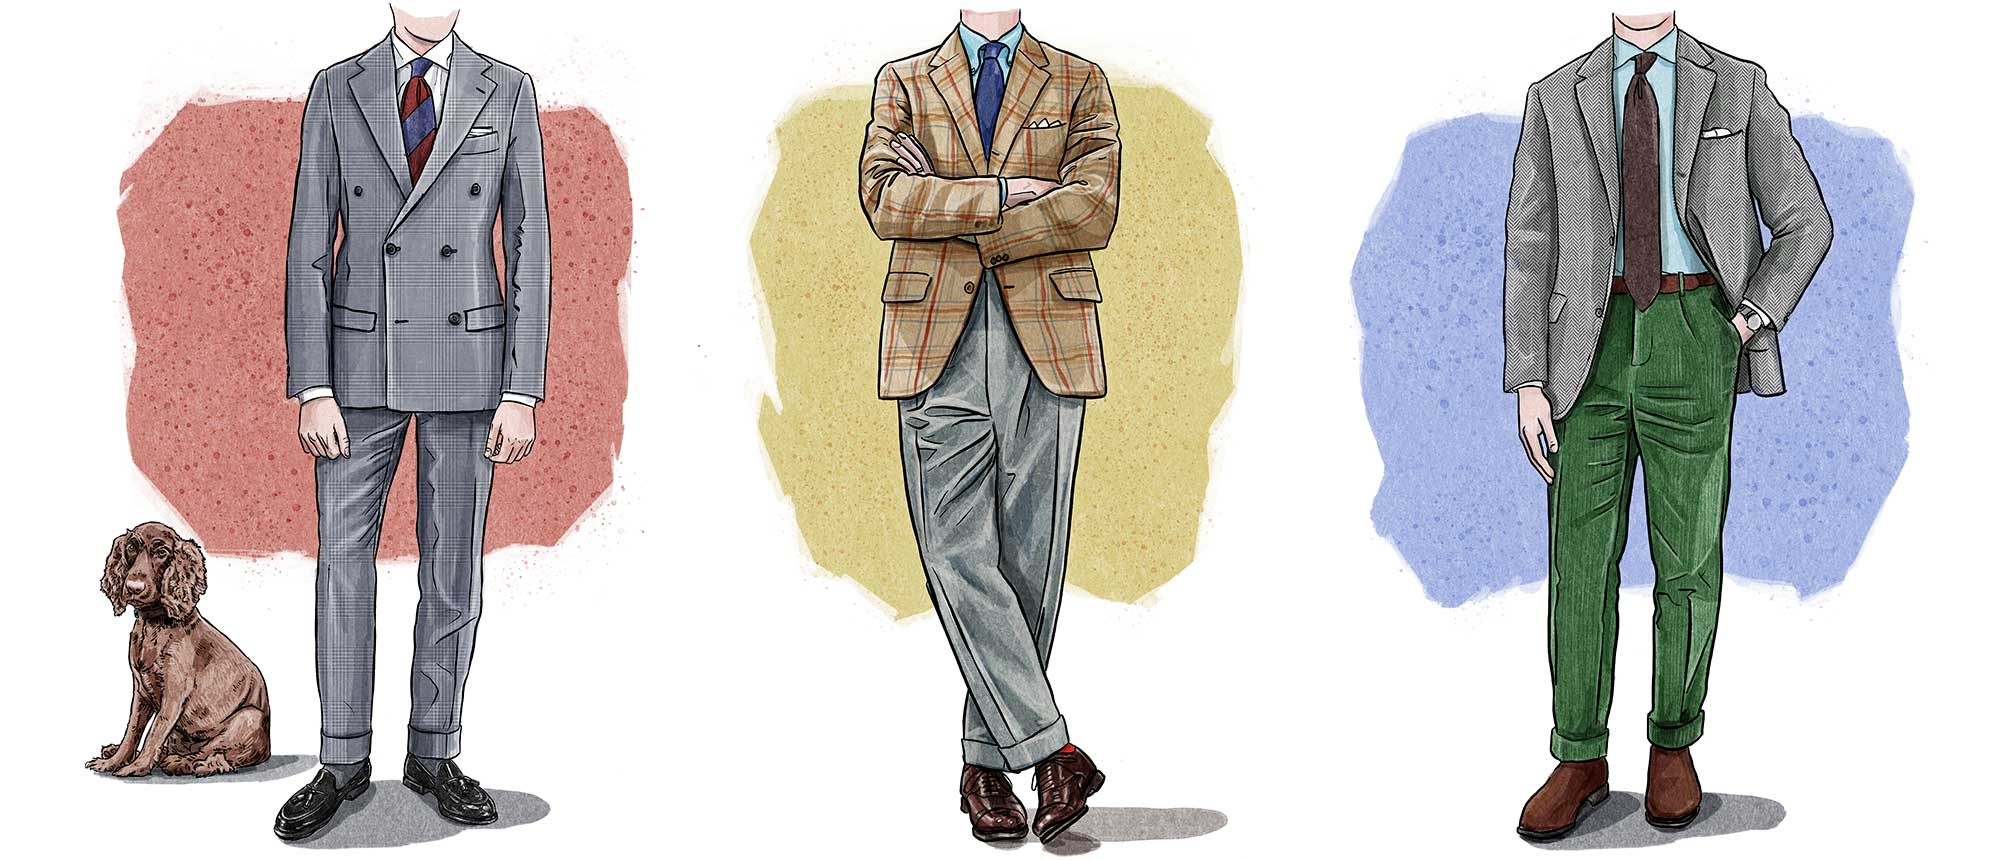 Crockett & Jones - How to Style Shoes in Autumn